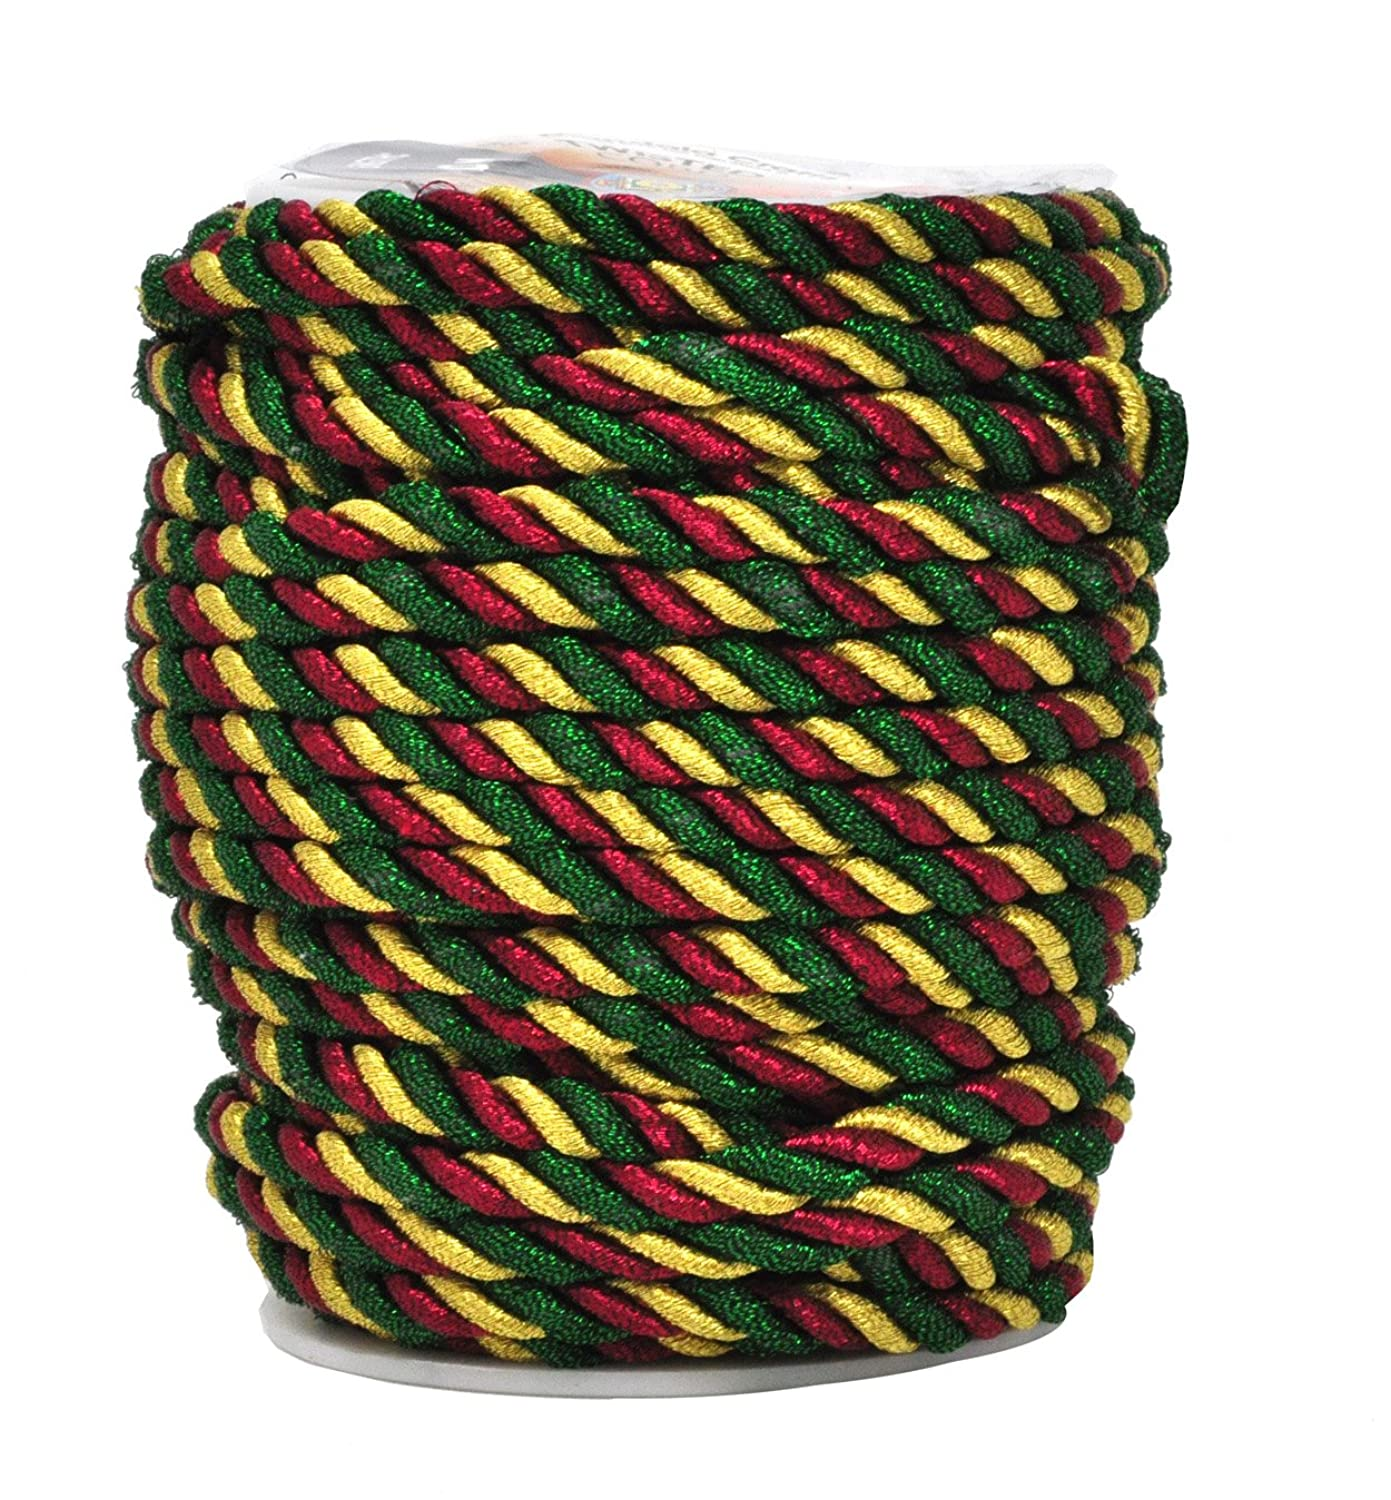 Mandala Crafts Rayon Twisted Cord Trim, Shiny Viscose Cording for Home Décor, Upholstery, Curtain Tieback, Honor Cord (5mm, Red Green)